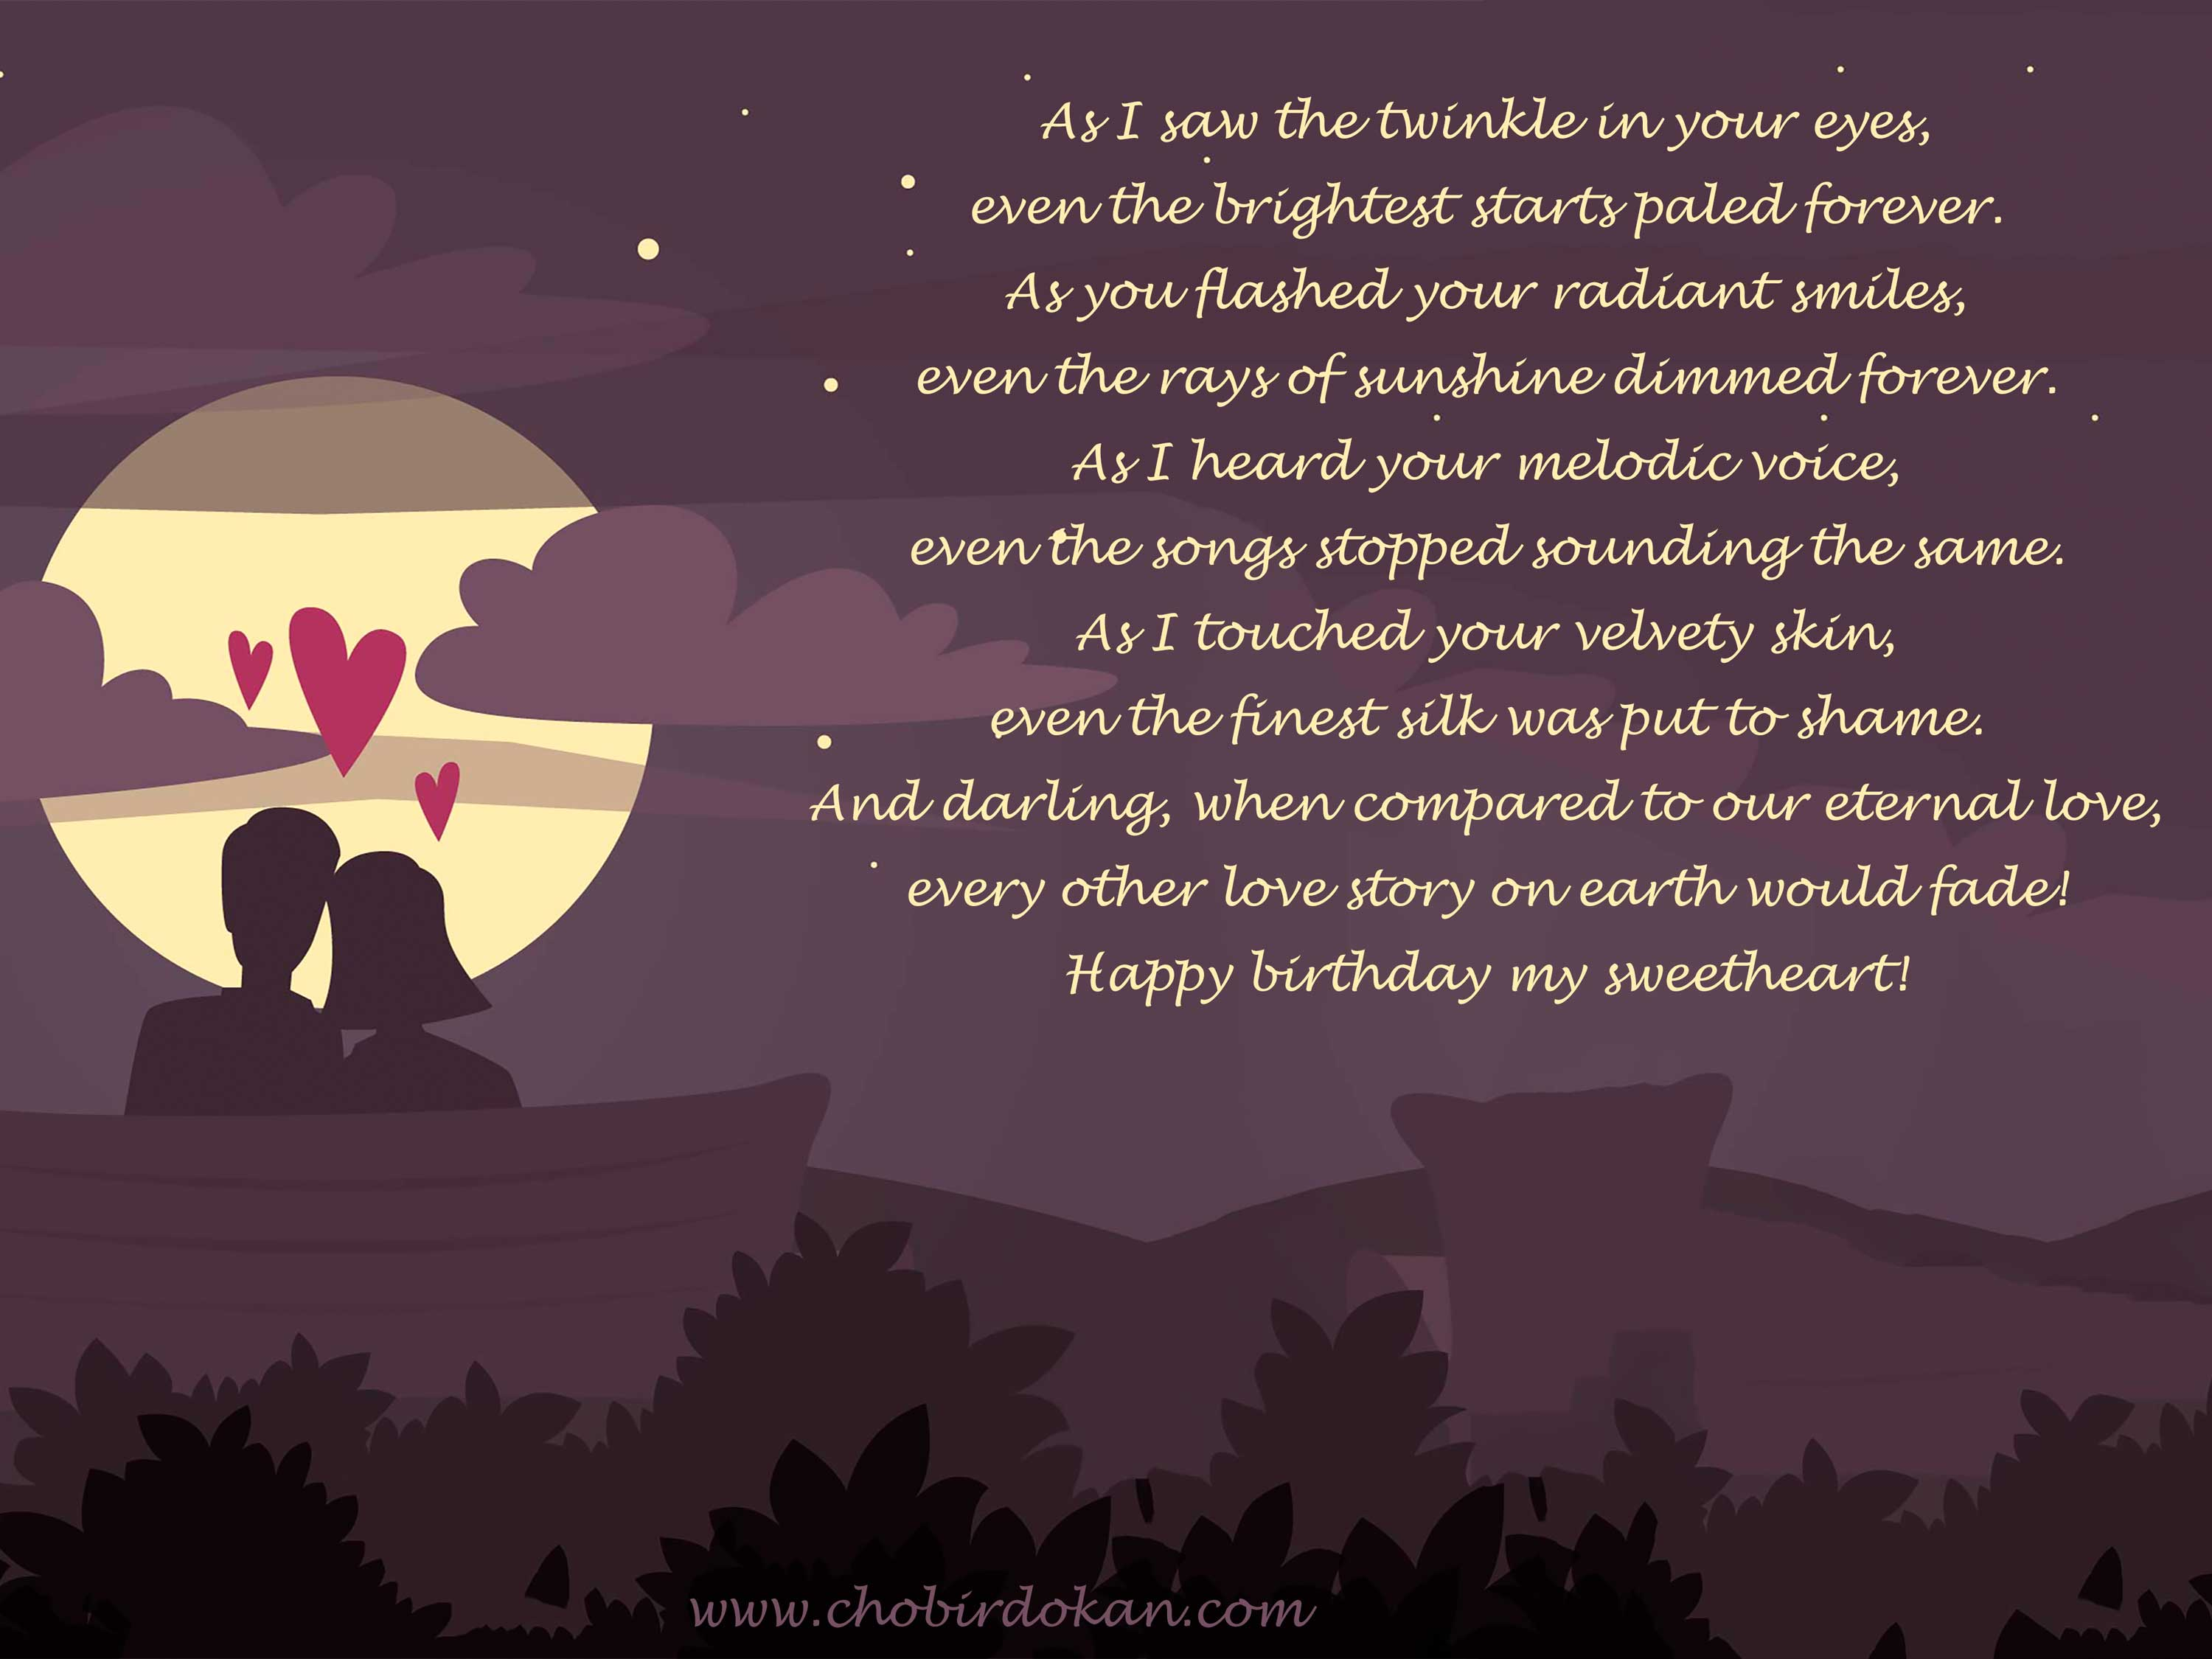 birthday poem for wife ; best-romantic-poem-for-her-images-high-quality-widescreen-rtic-happy-birthday-poems-girlfriend-or-wife-of-pc